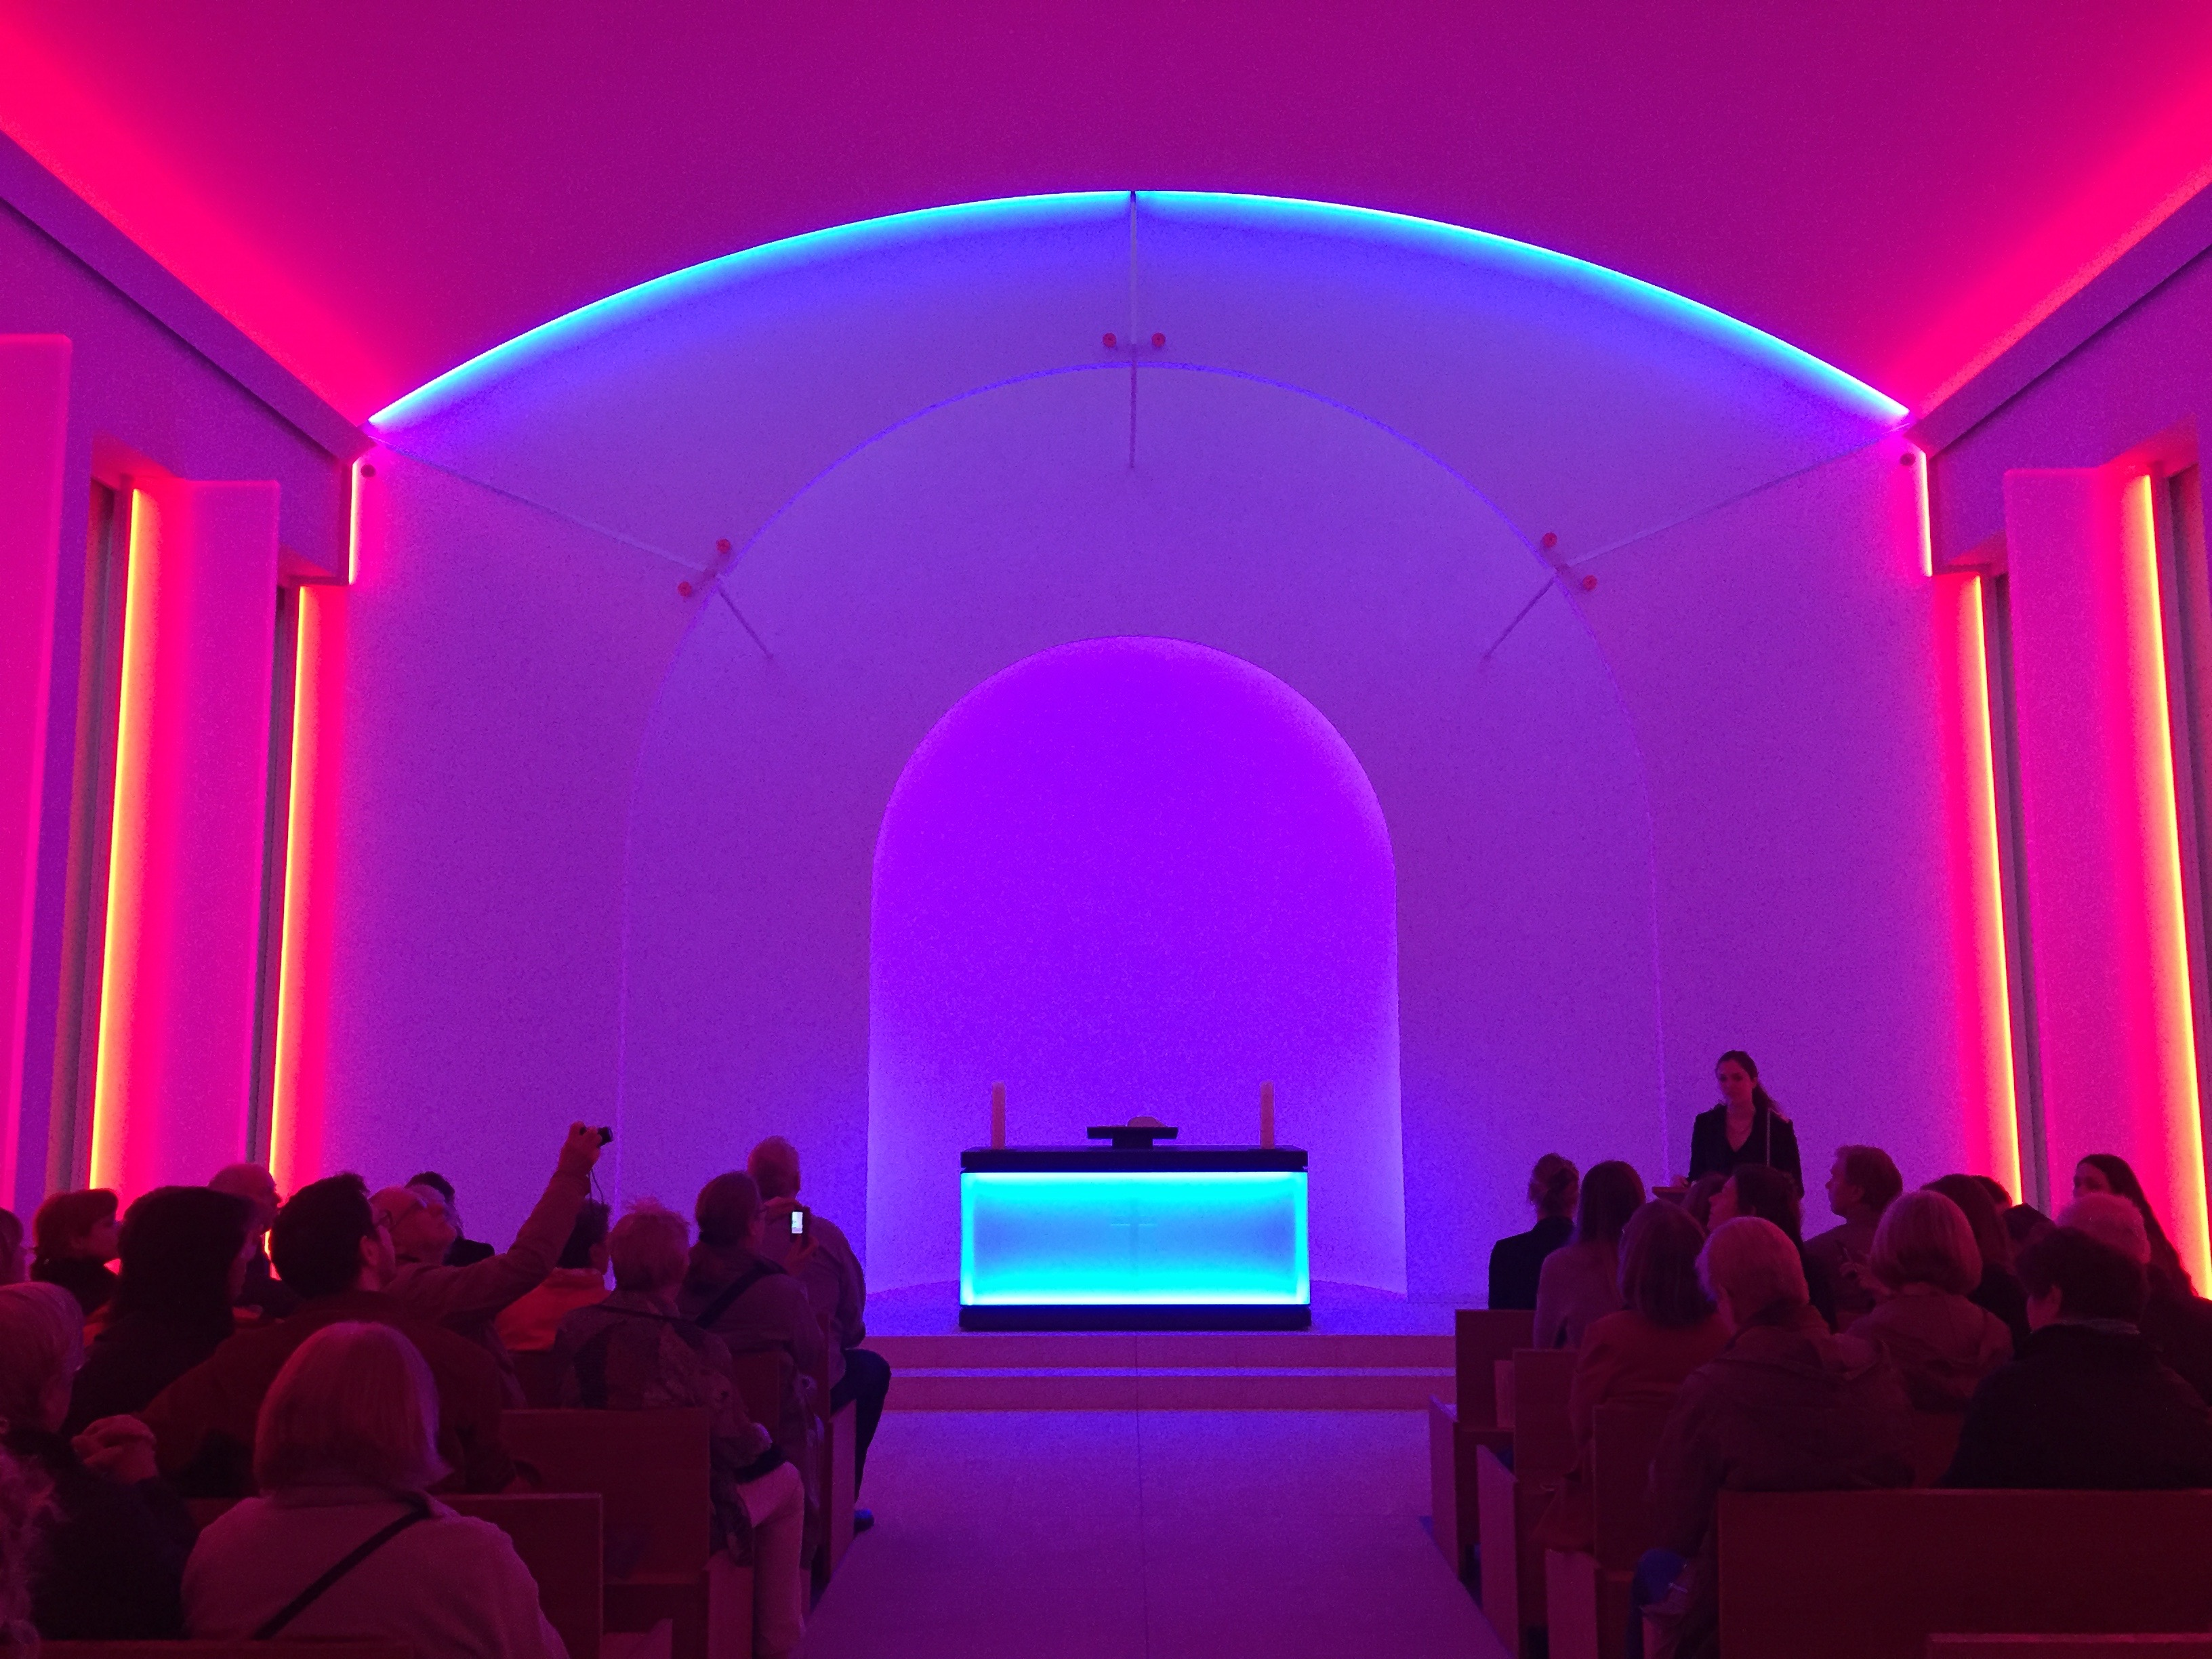 James Turrell at Dorotheenstadt Chapel, Mitte. Courtesy Diana d'Arenberg.